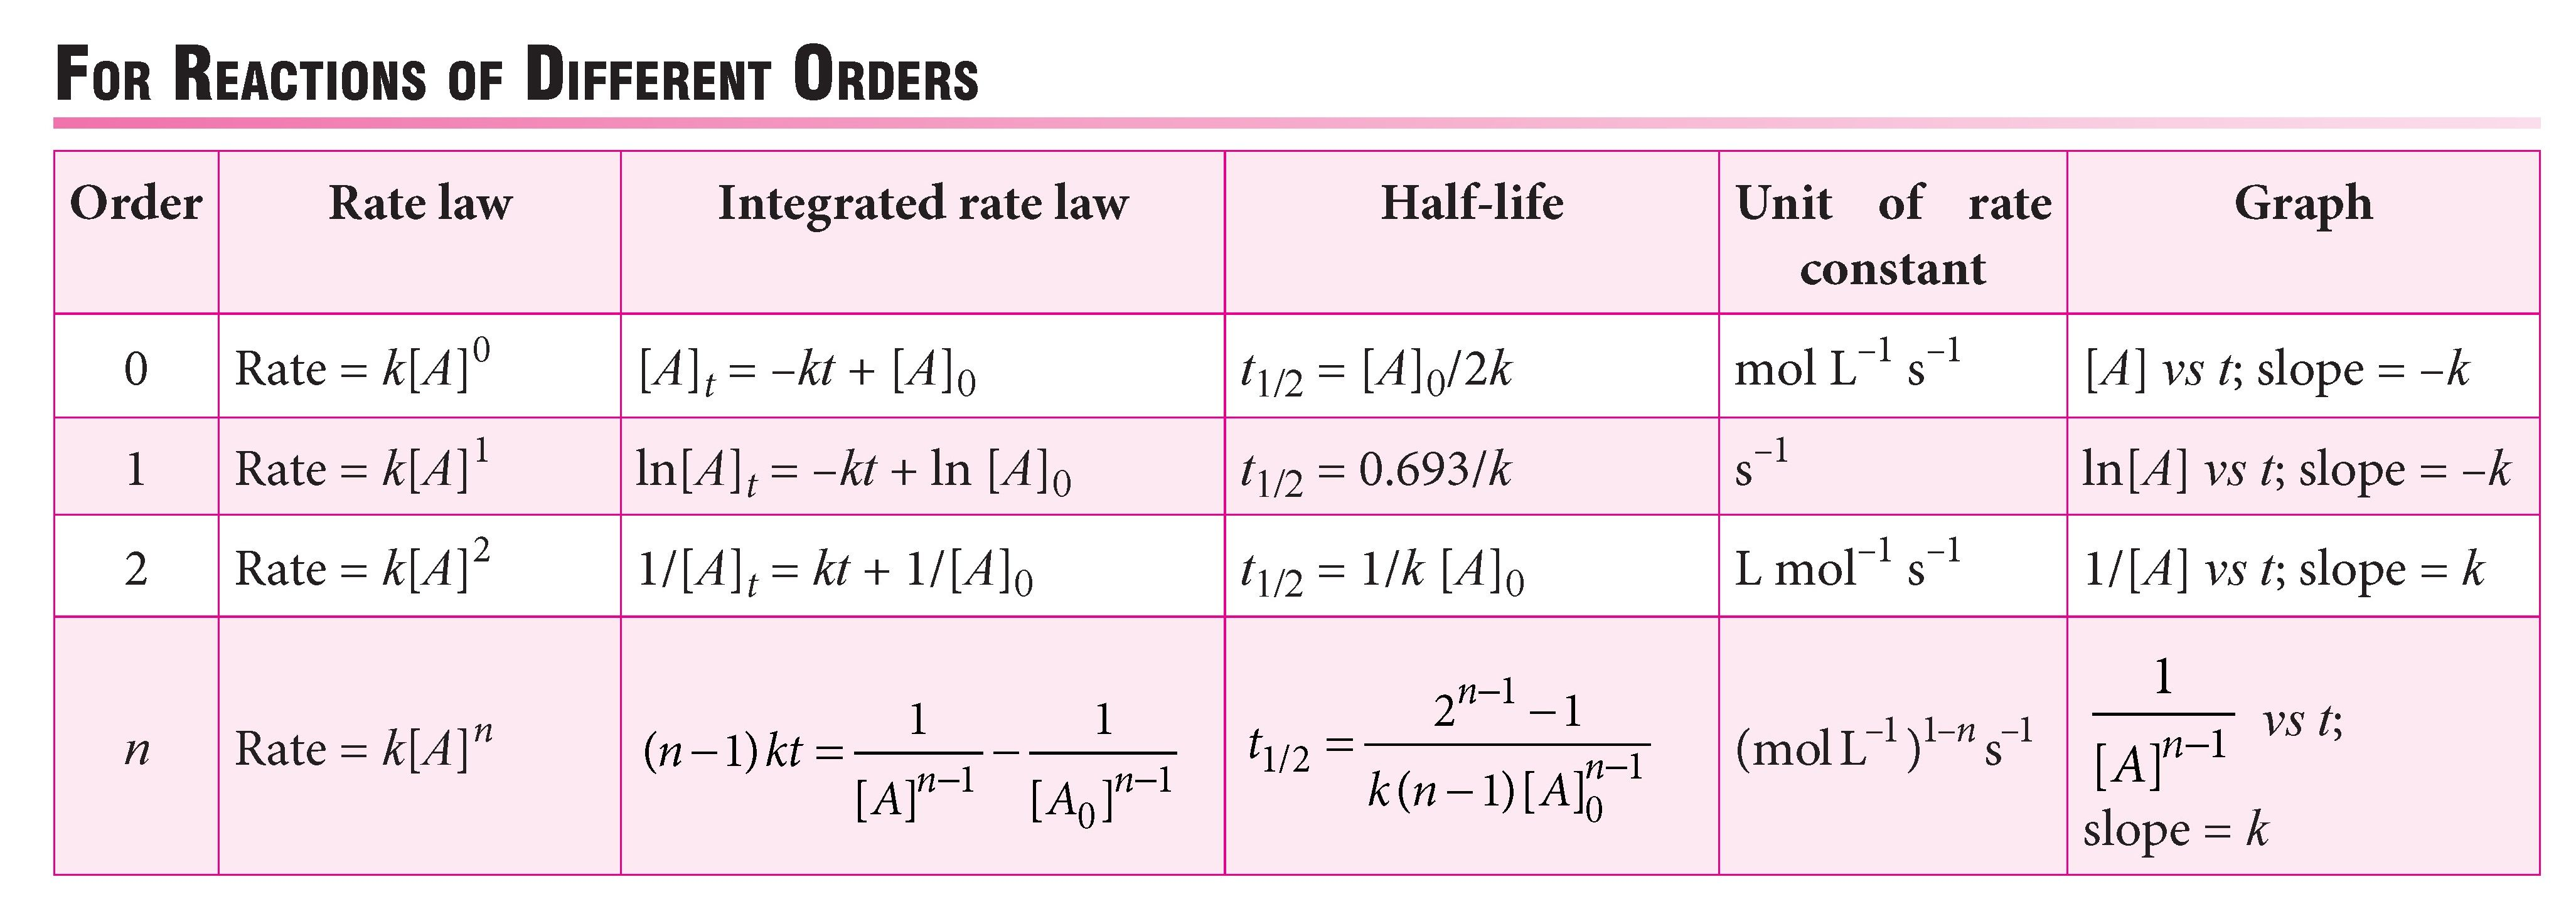 Learn Rate Law And Rate Constant For Reactions Of Different Orders Chemicalkinetics Ratelaw Ratecon Chemistry Education Chemical Kinetics Physical Chemistry